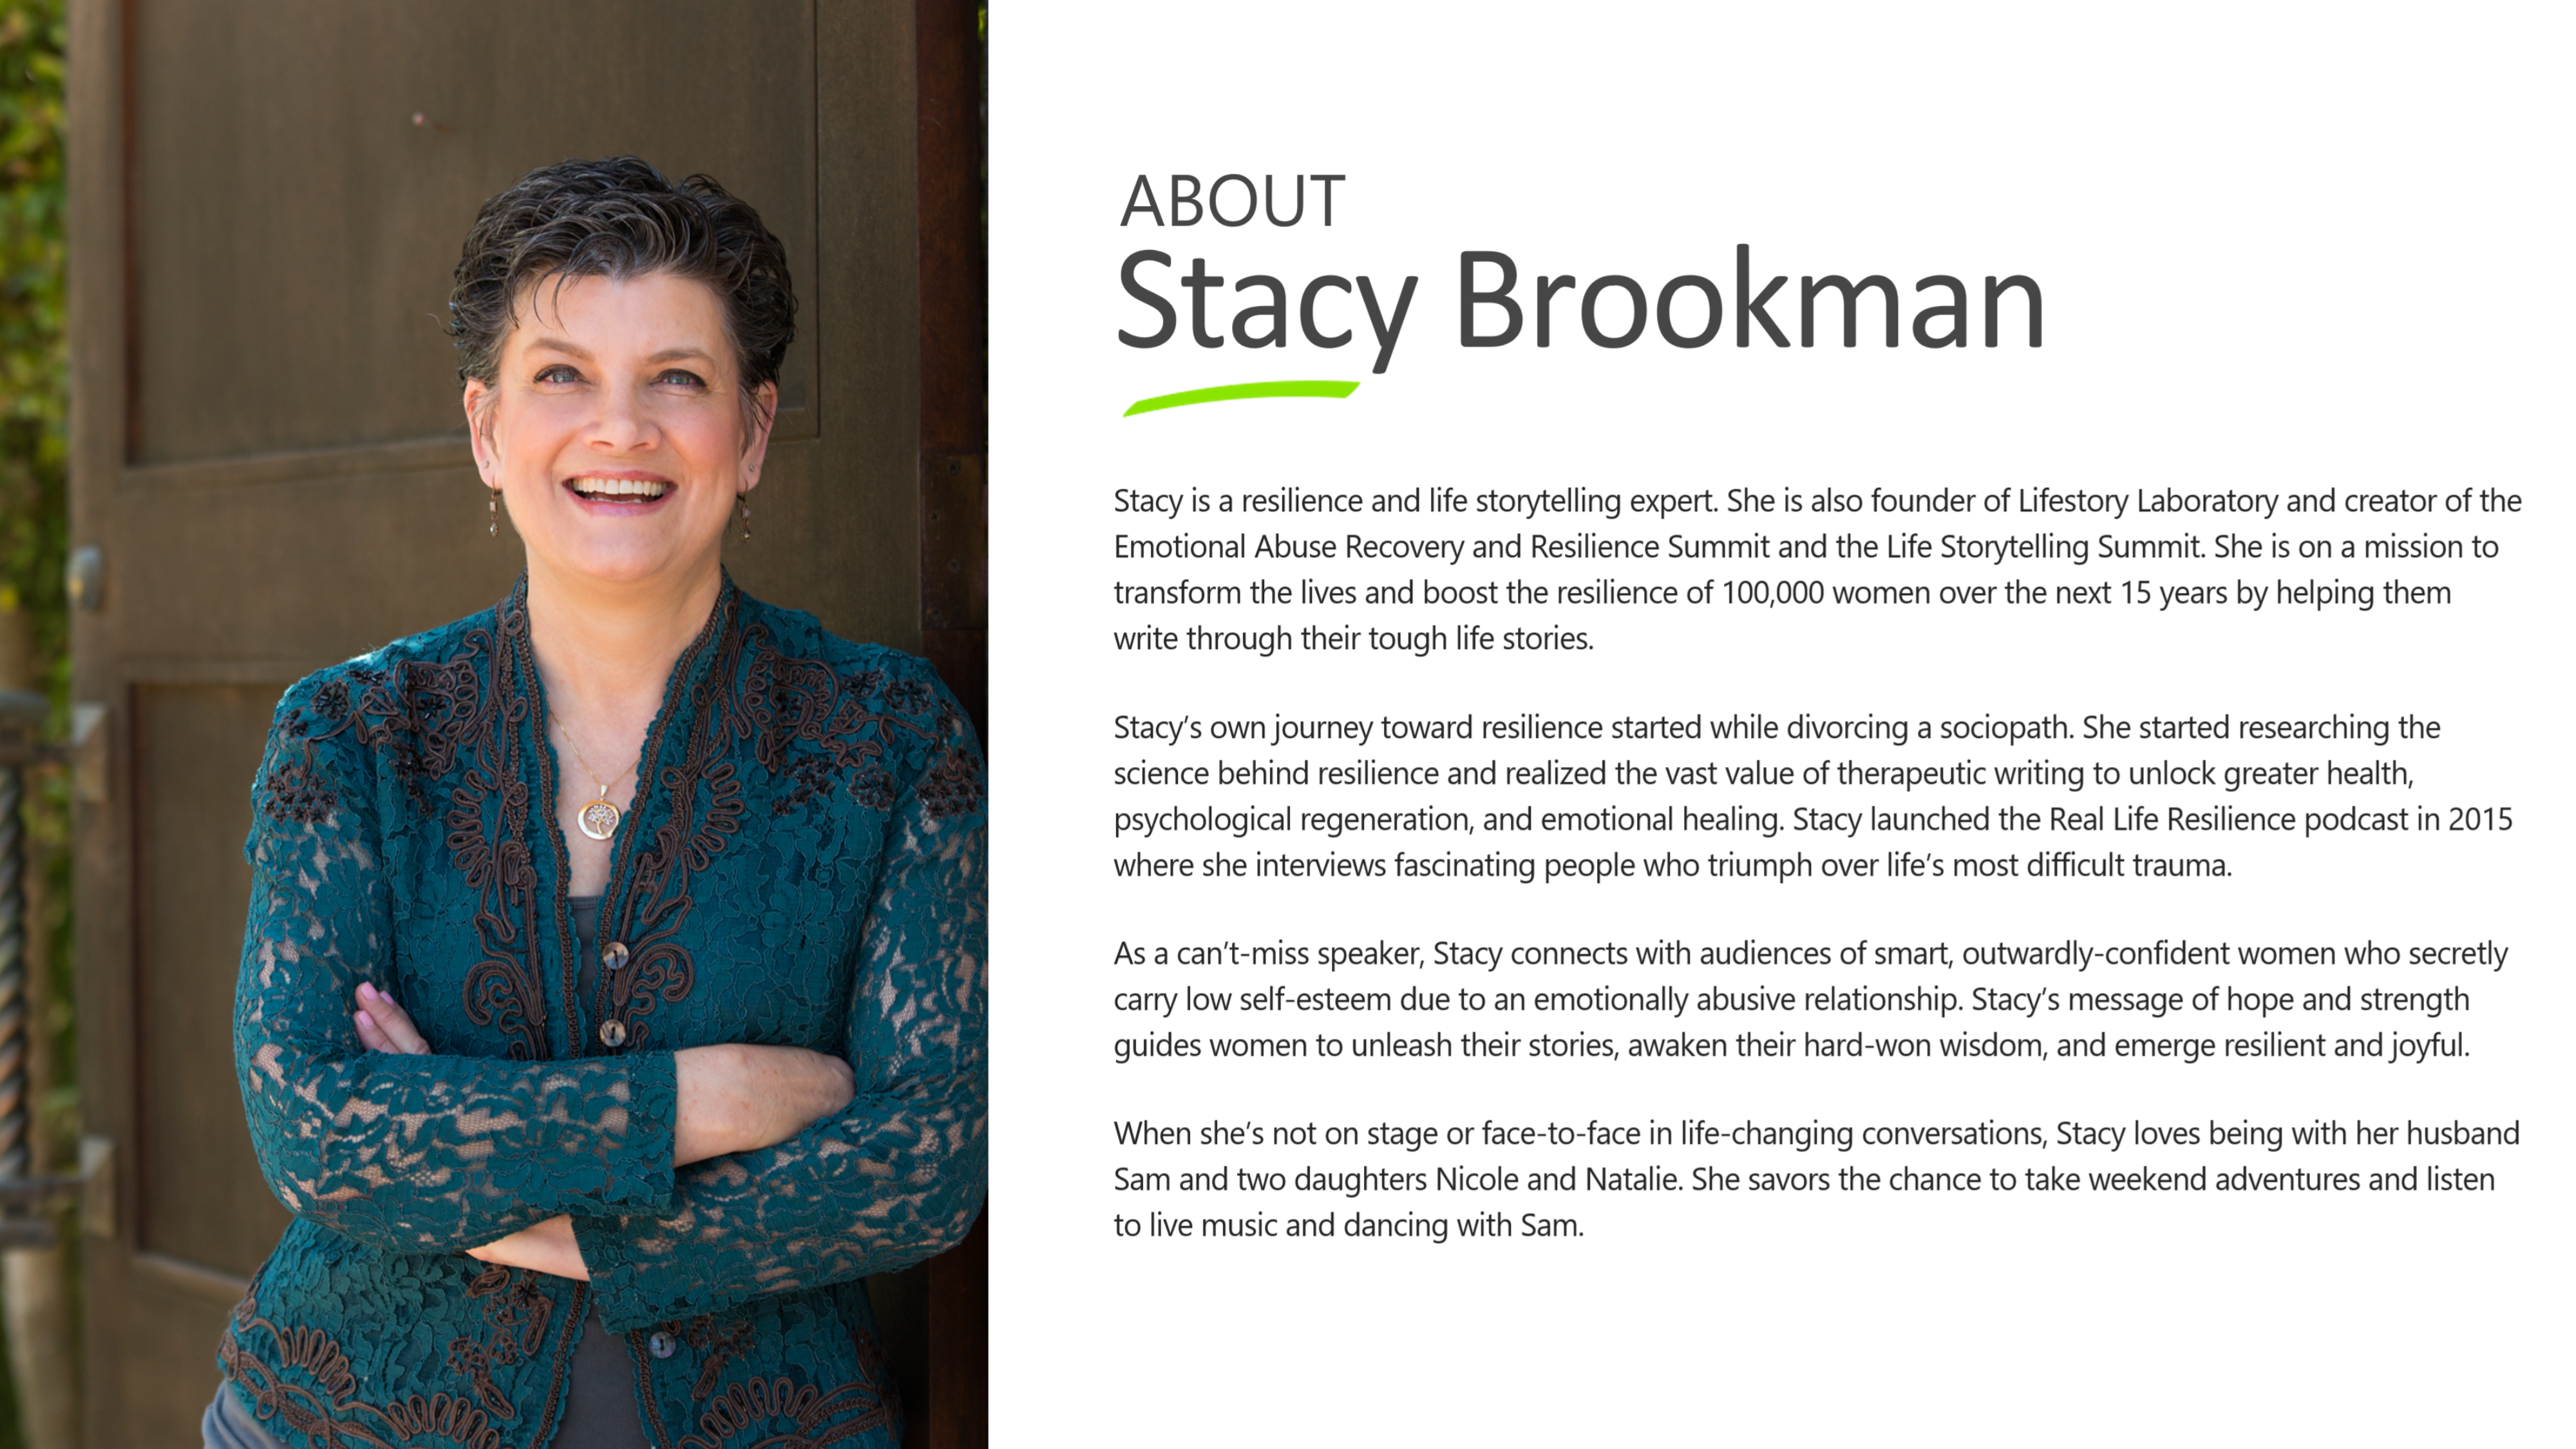 Conference speaker stacy brookman